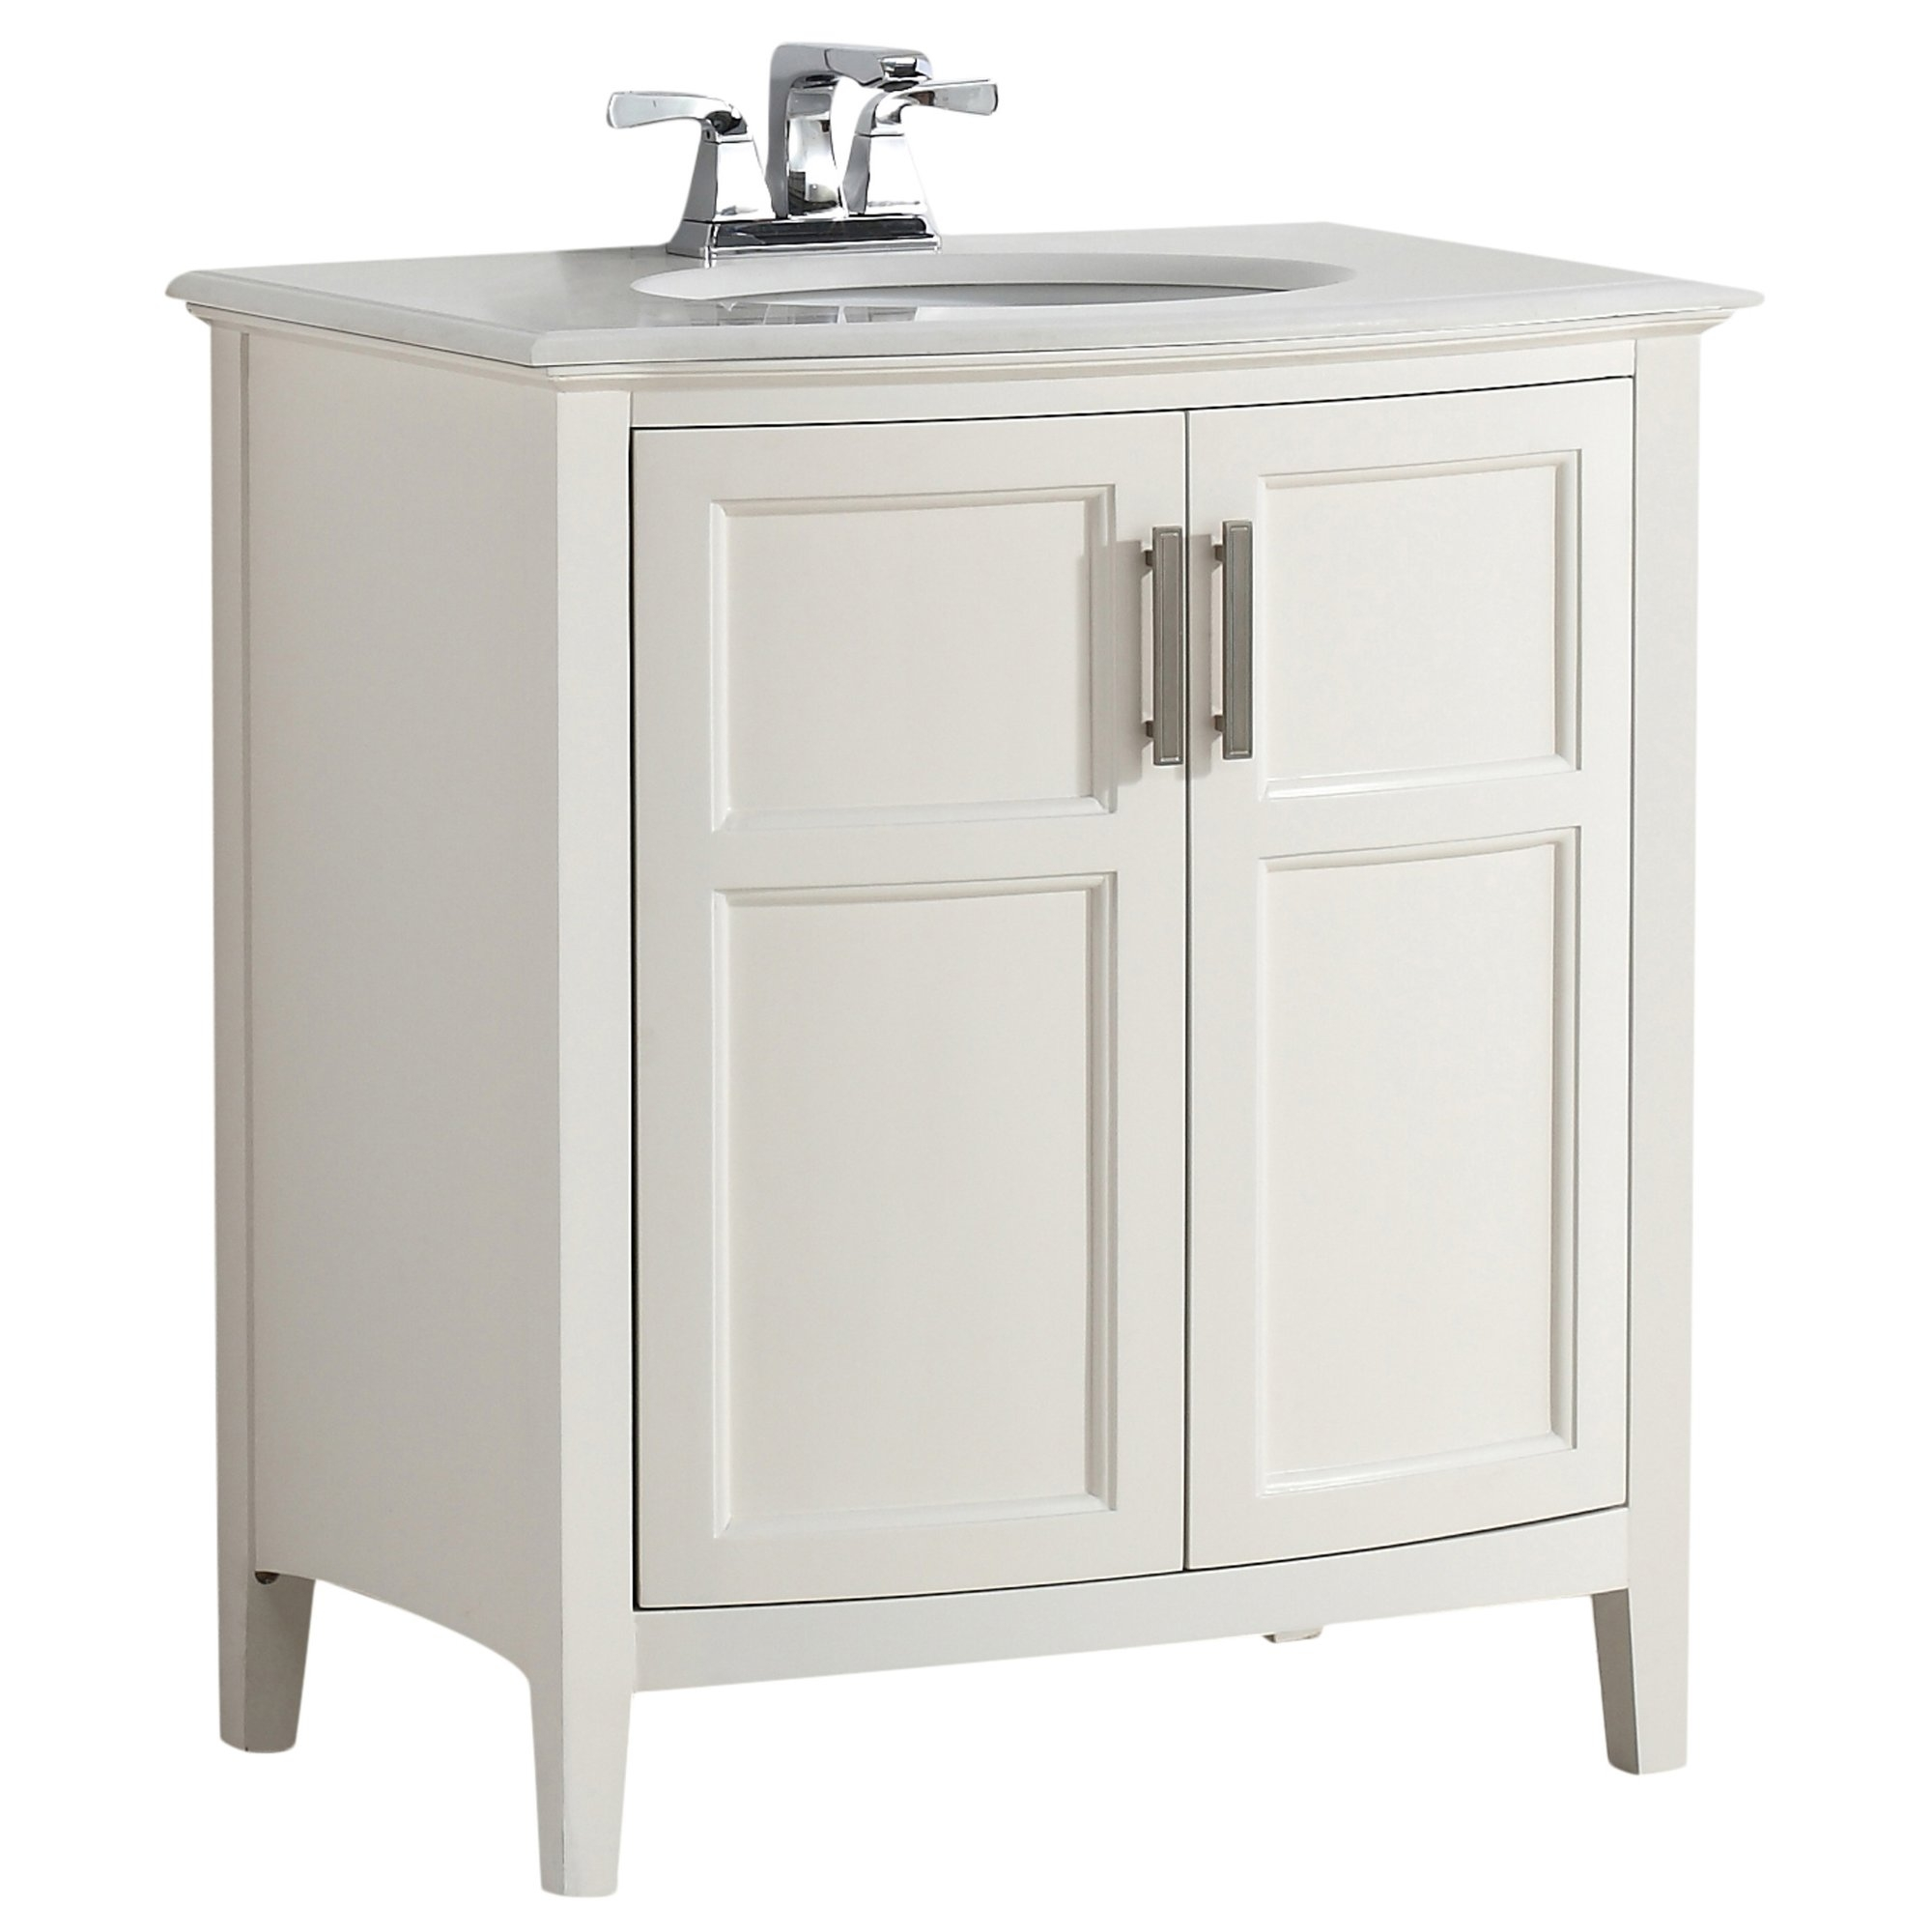 Rounded Front Bathroom Vanity